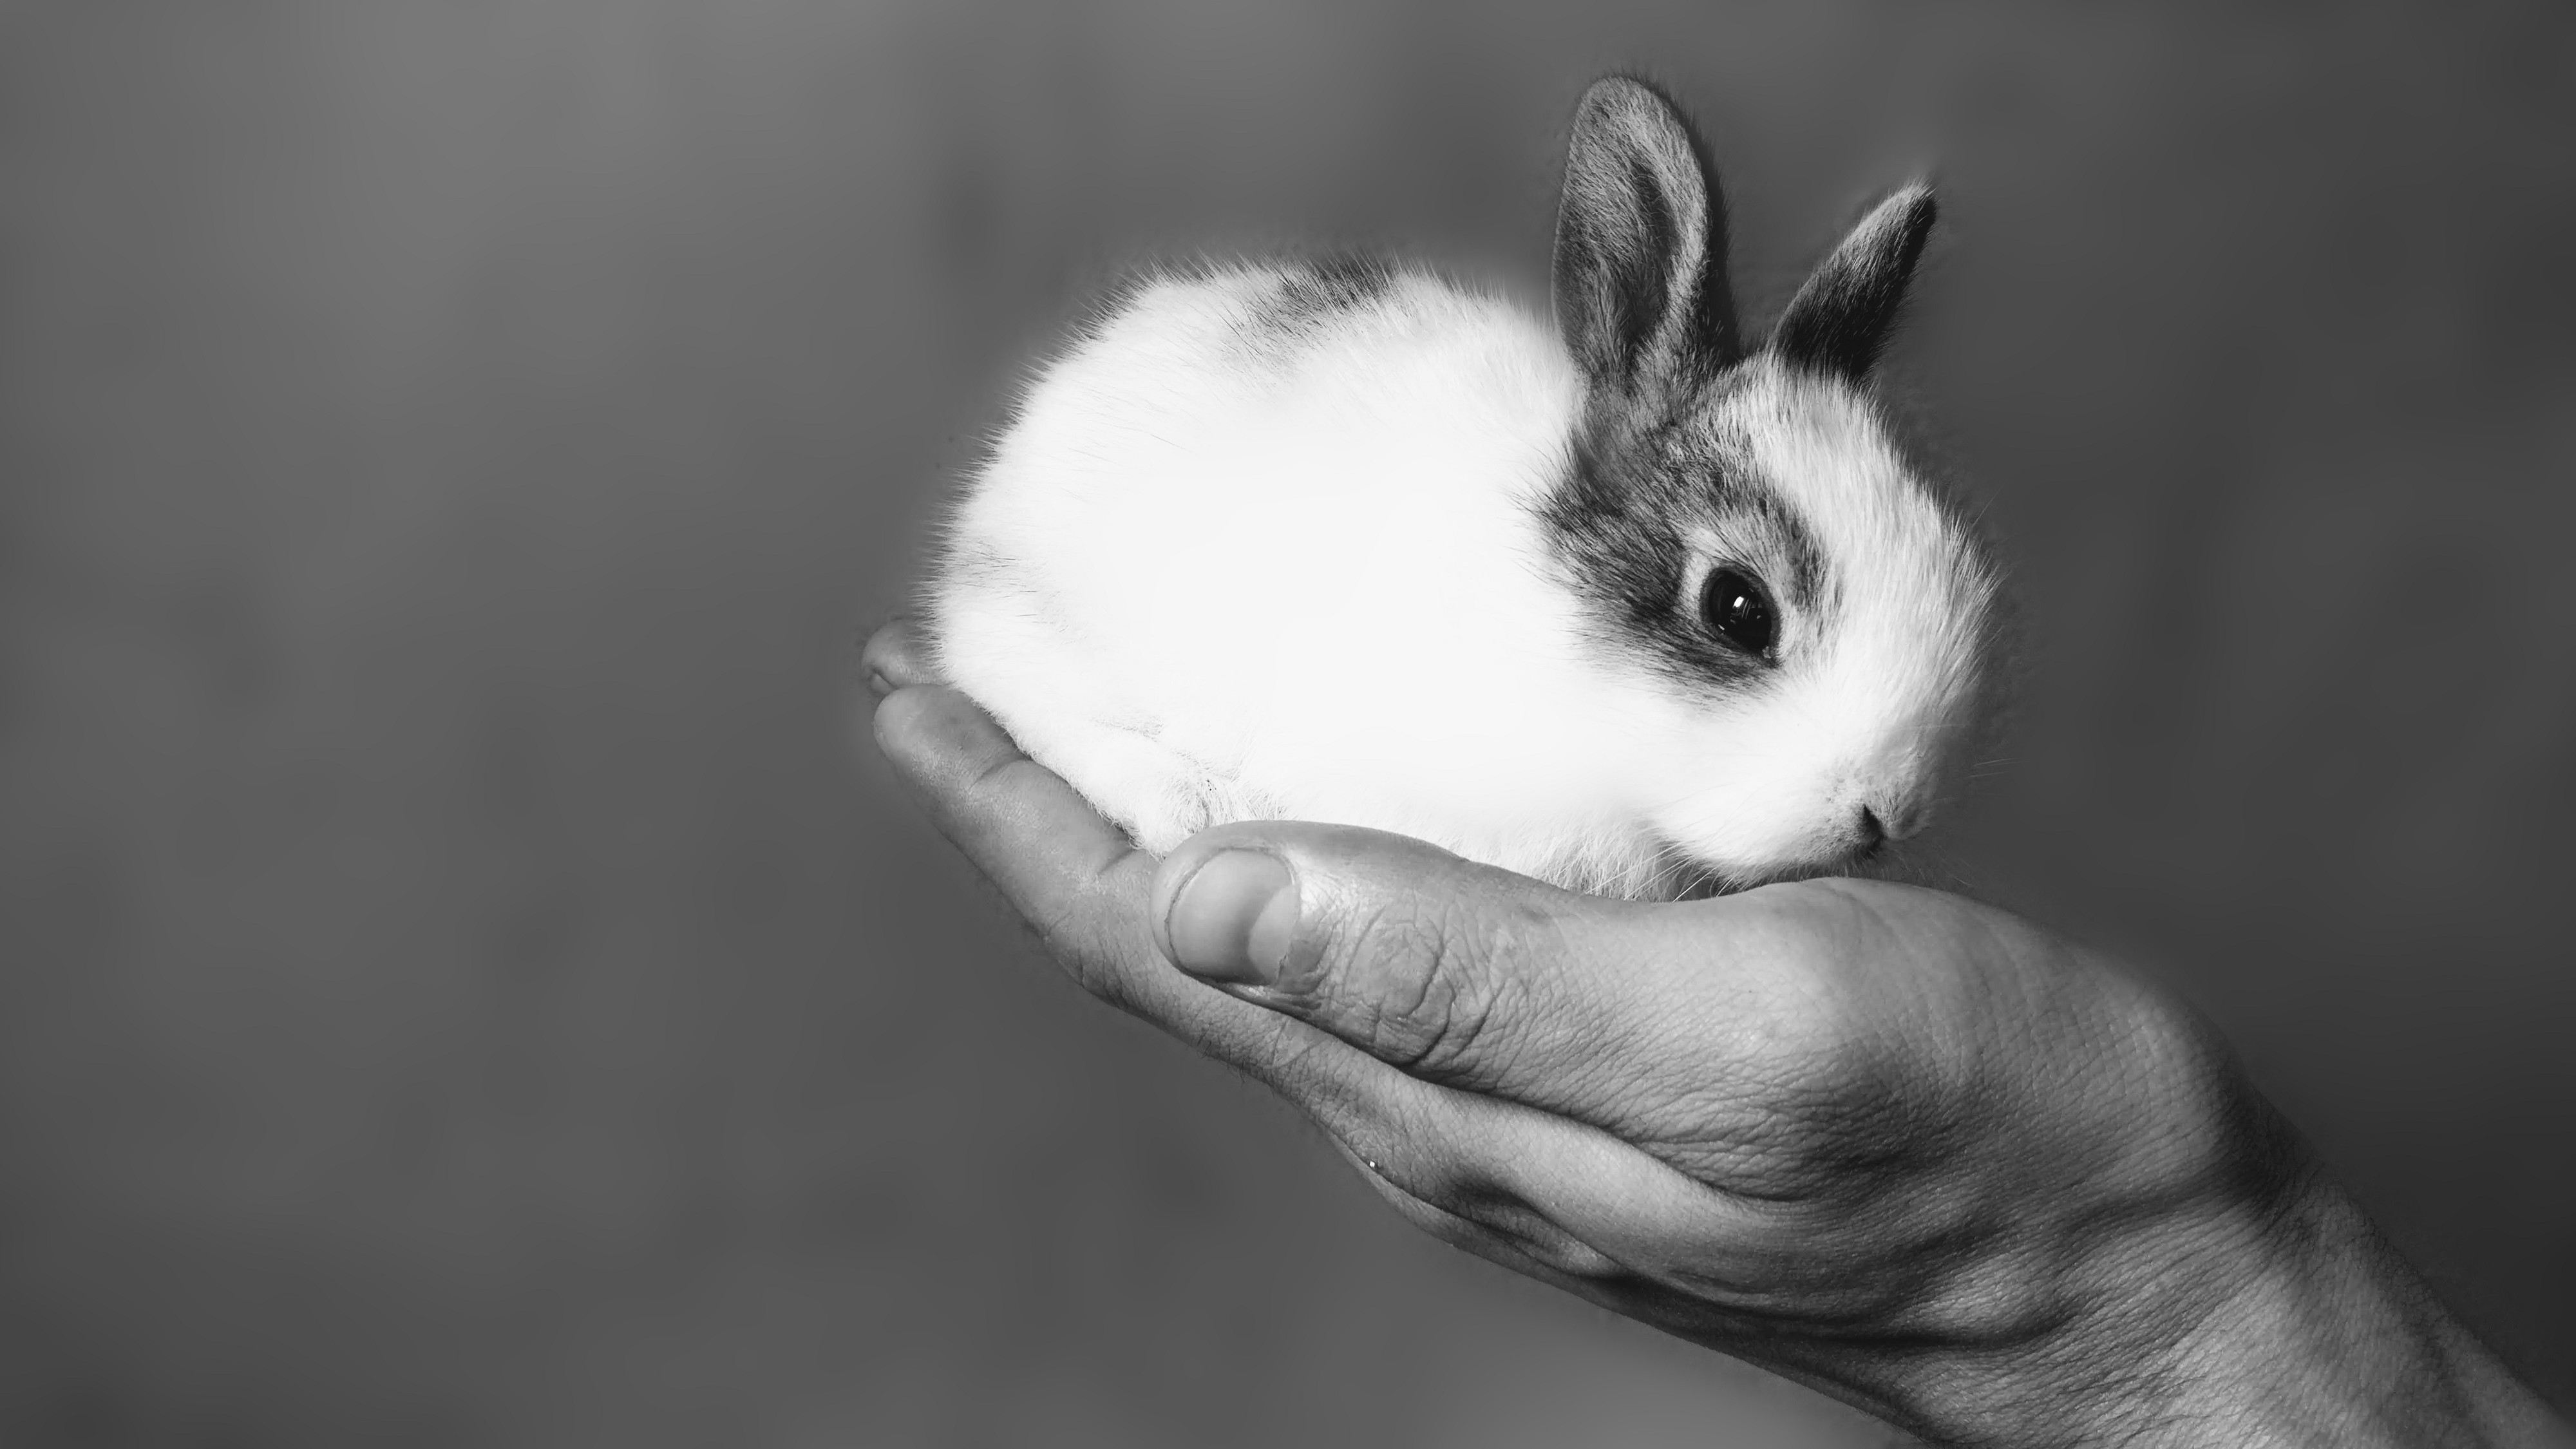 A black and white photo of a small baseball sized bunny sitting in someone's outstretched hand